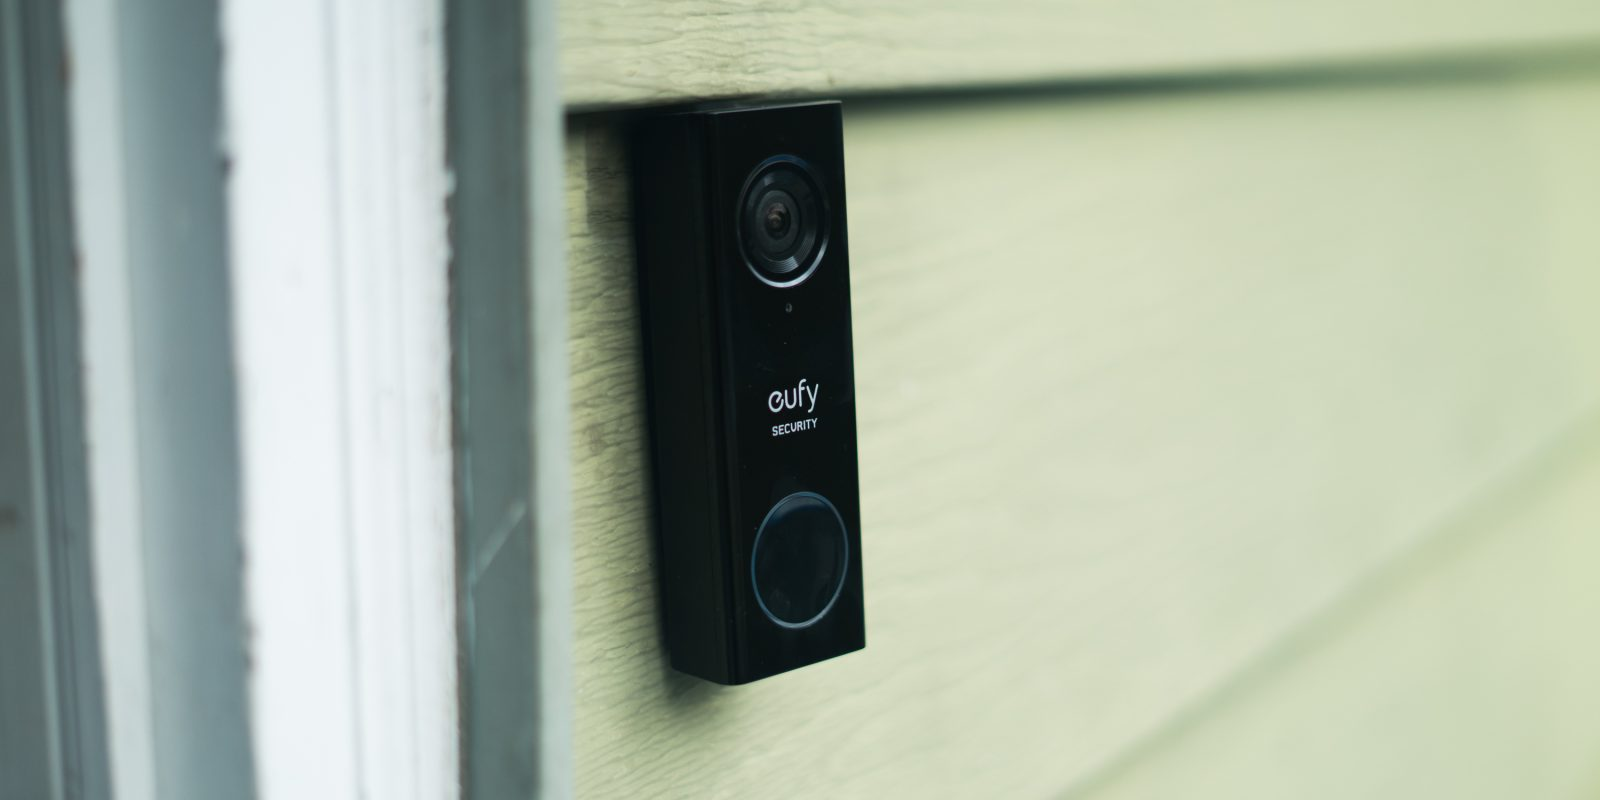 Surveil package deliveries with eufy's Smart Video Doorbell at $120 ($40 off)